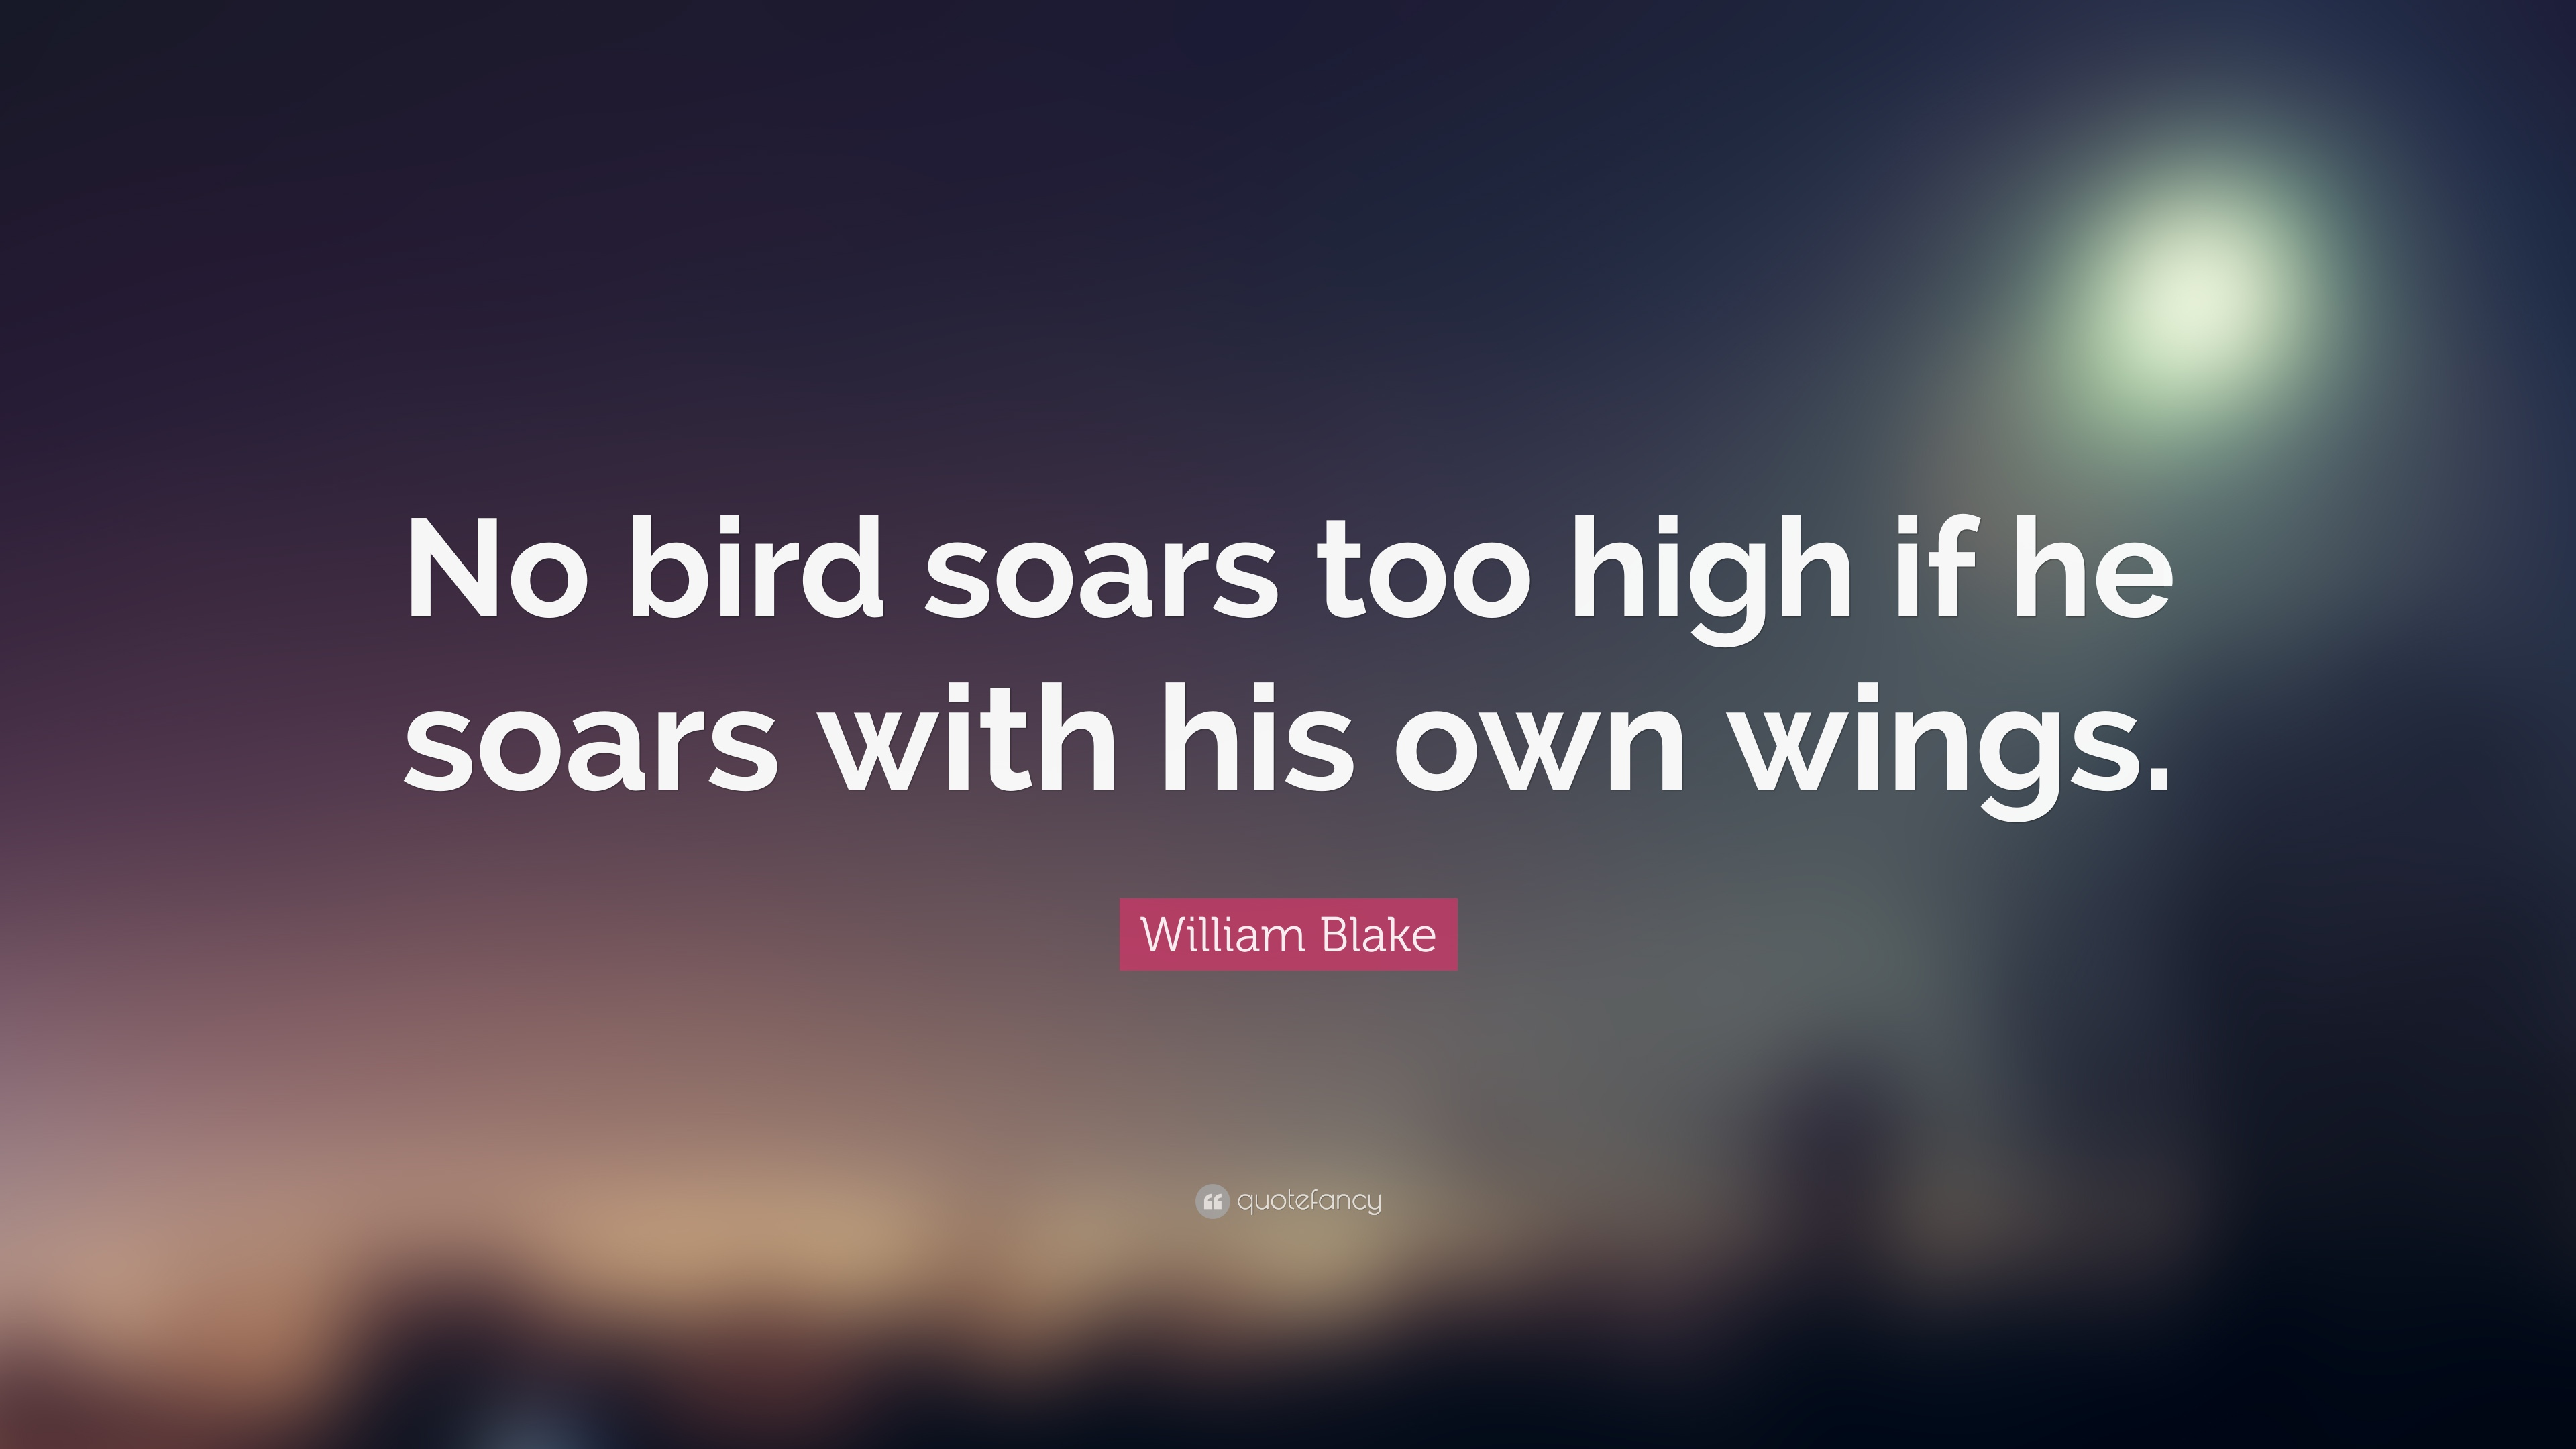 no bird soars too high if he soars with his own wings essay No bird soars too high if he soars with his own wings -william blake it is usual and customary these days to forewarn with disclaimers such as the following.